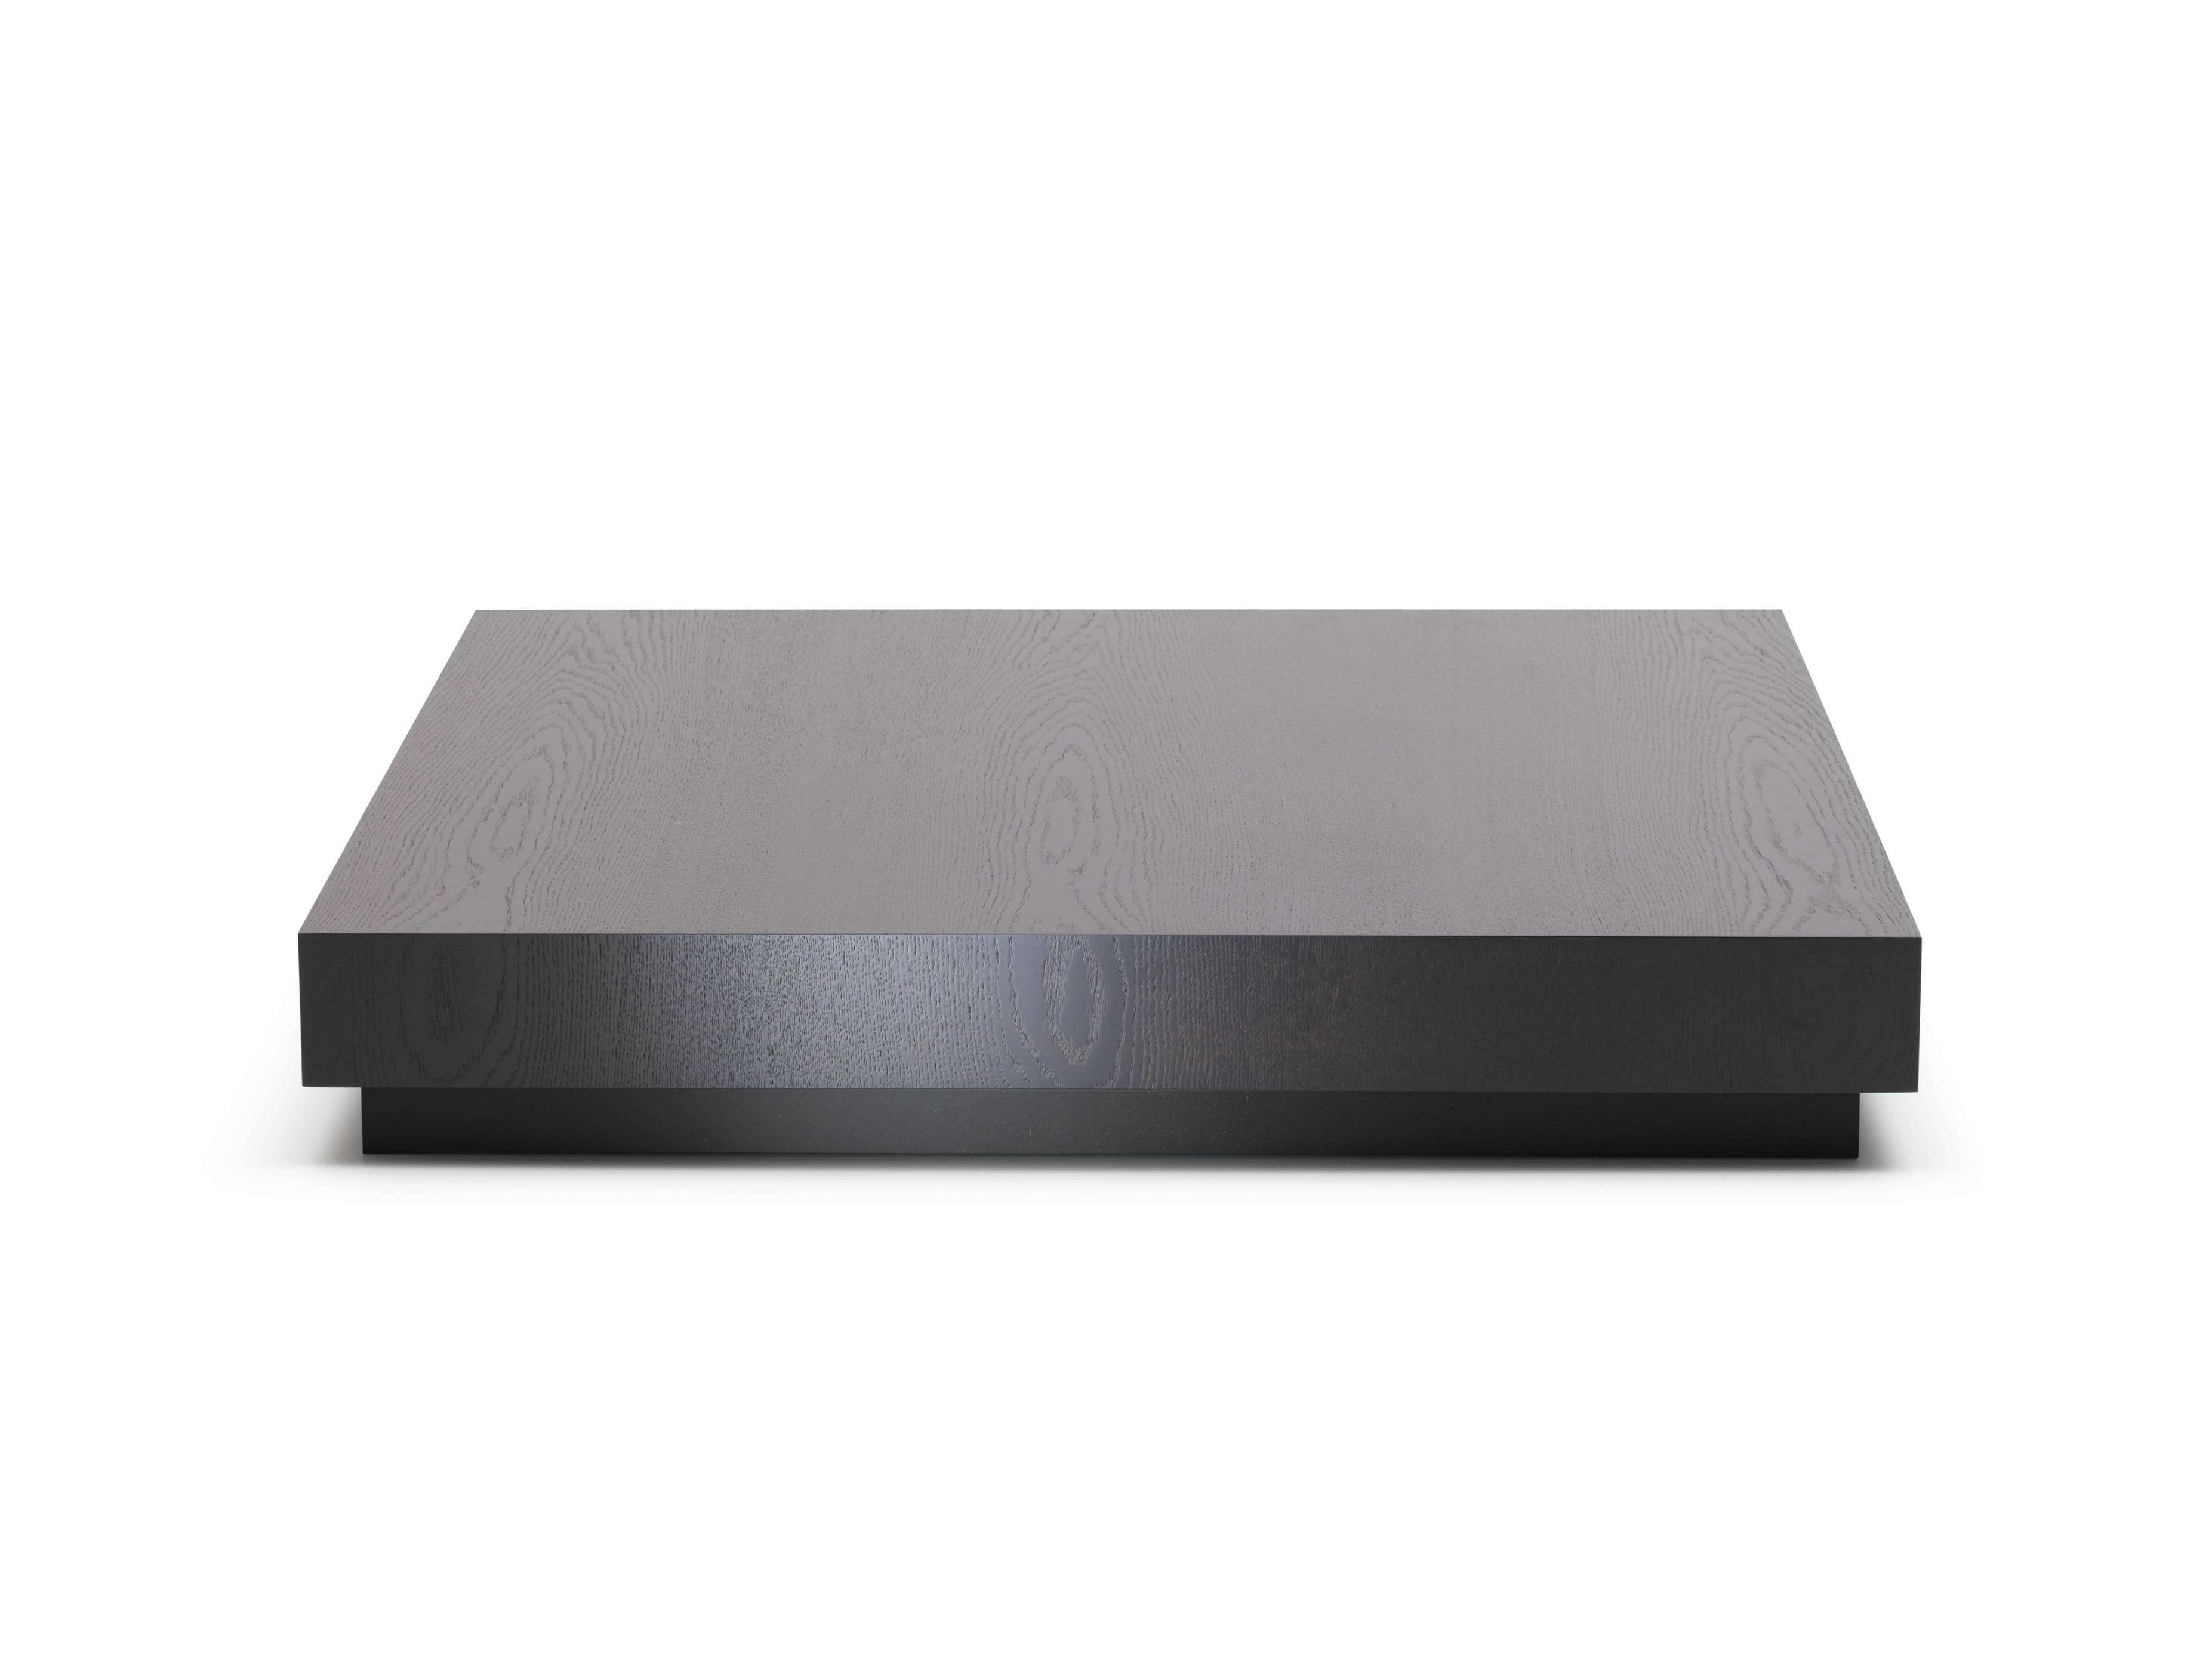 Furniture & Organization: Black Wood Low Square Coffee Tables For Inside Favorite Low Wood Coffee Tables (View 18 of 20)